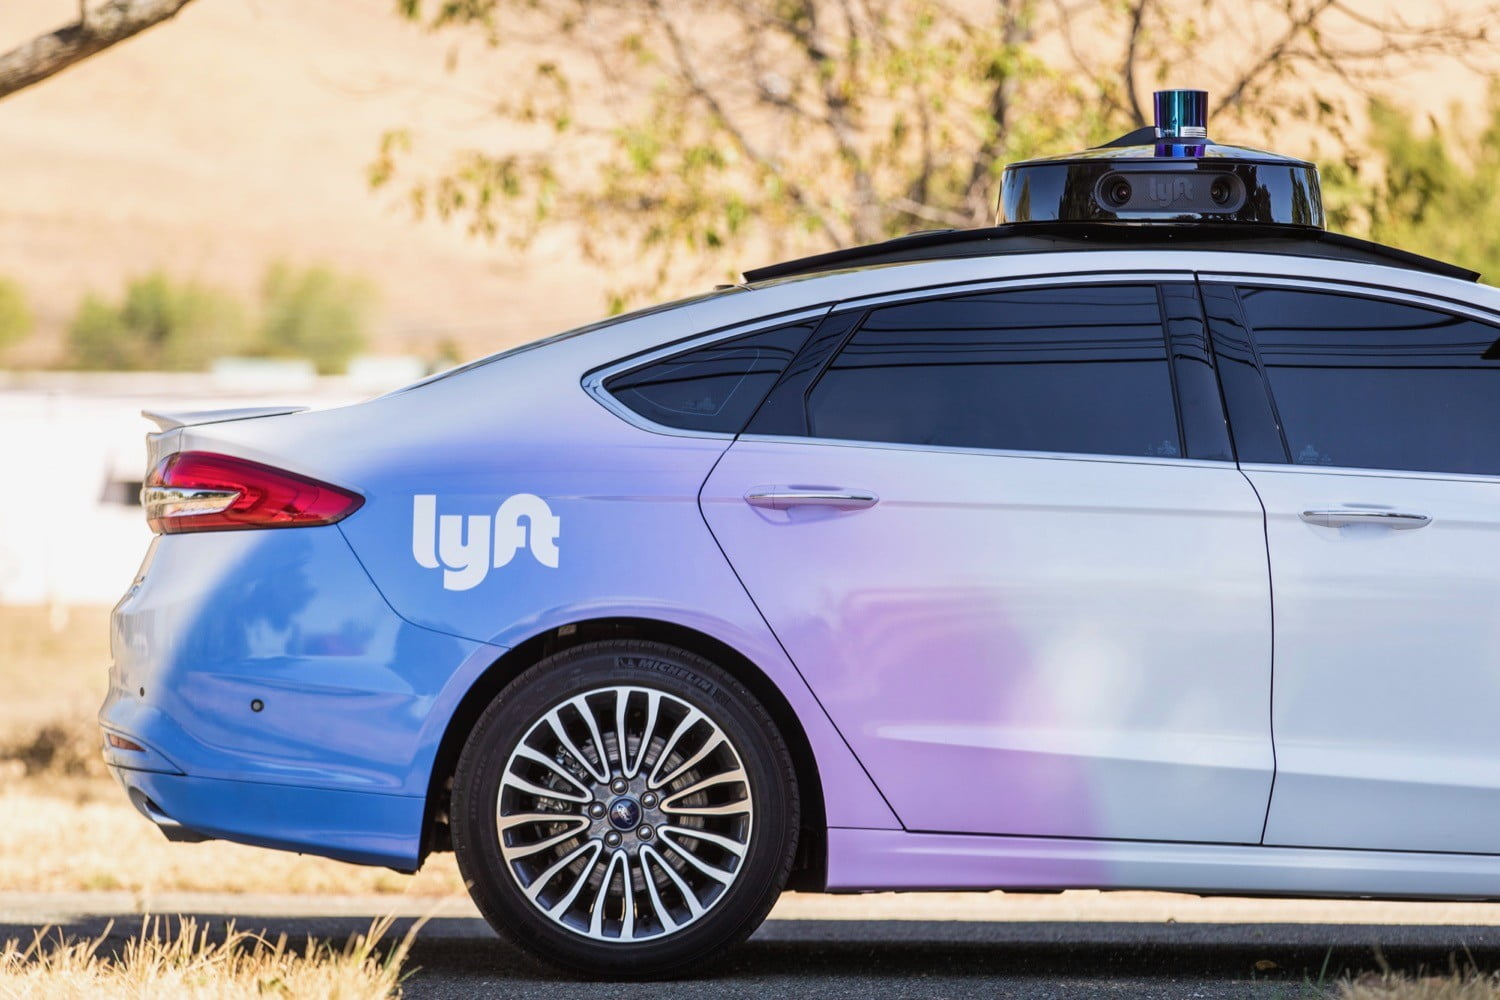 Lyft's self-driving car testing program is racking up the miles